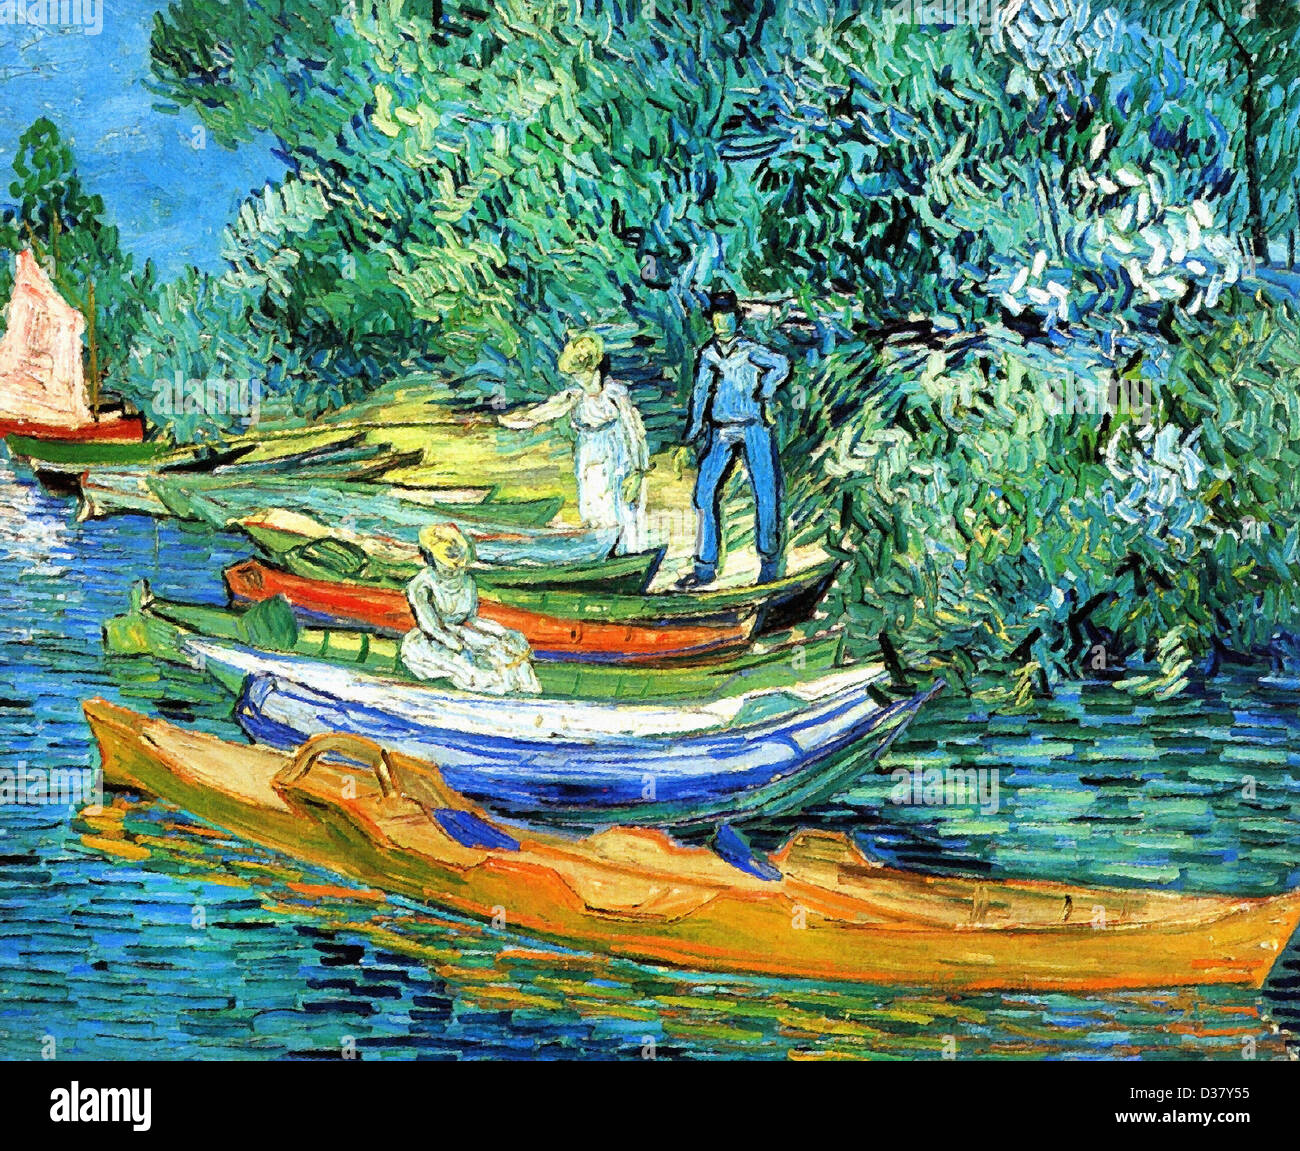 Vincent van Gogh, Rowing Boats on the Banks of the Oise. 1890. Post-Impressionism. Oil on canvas. - Stock Image